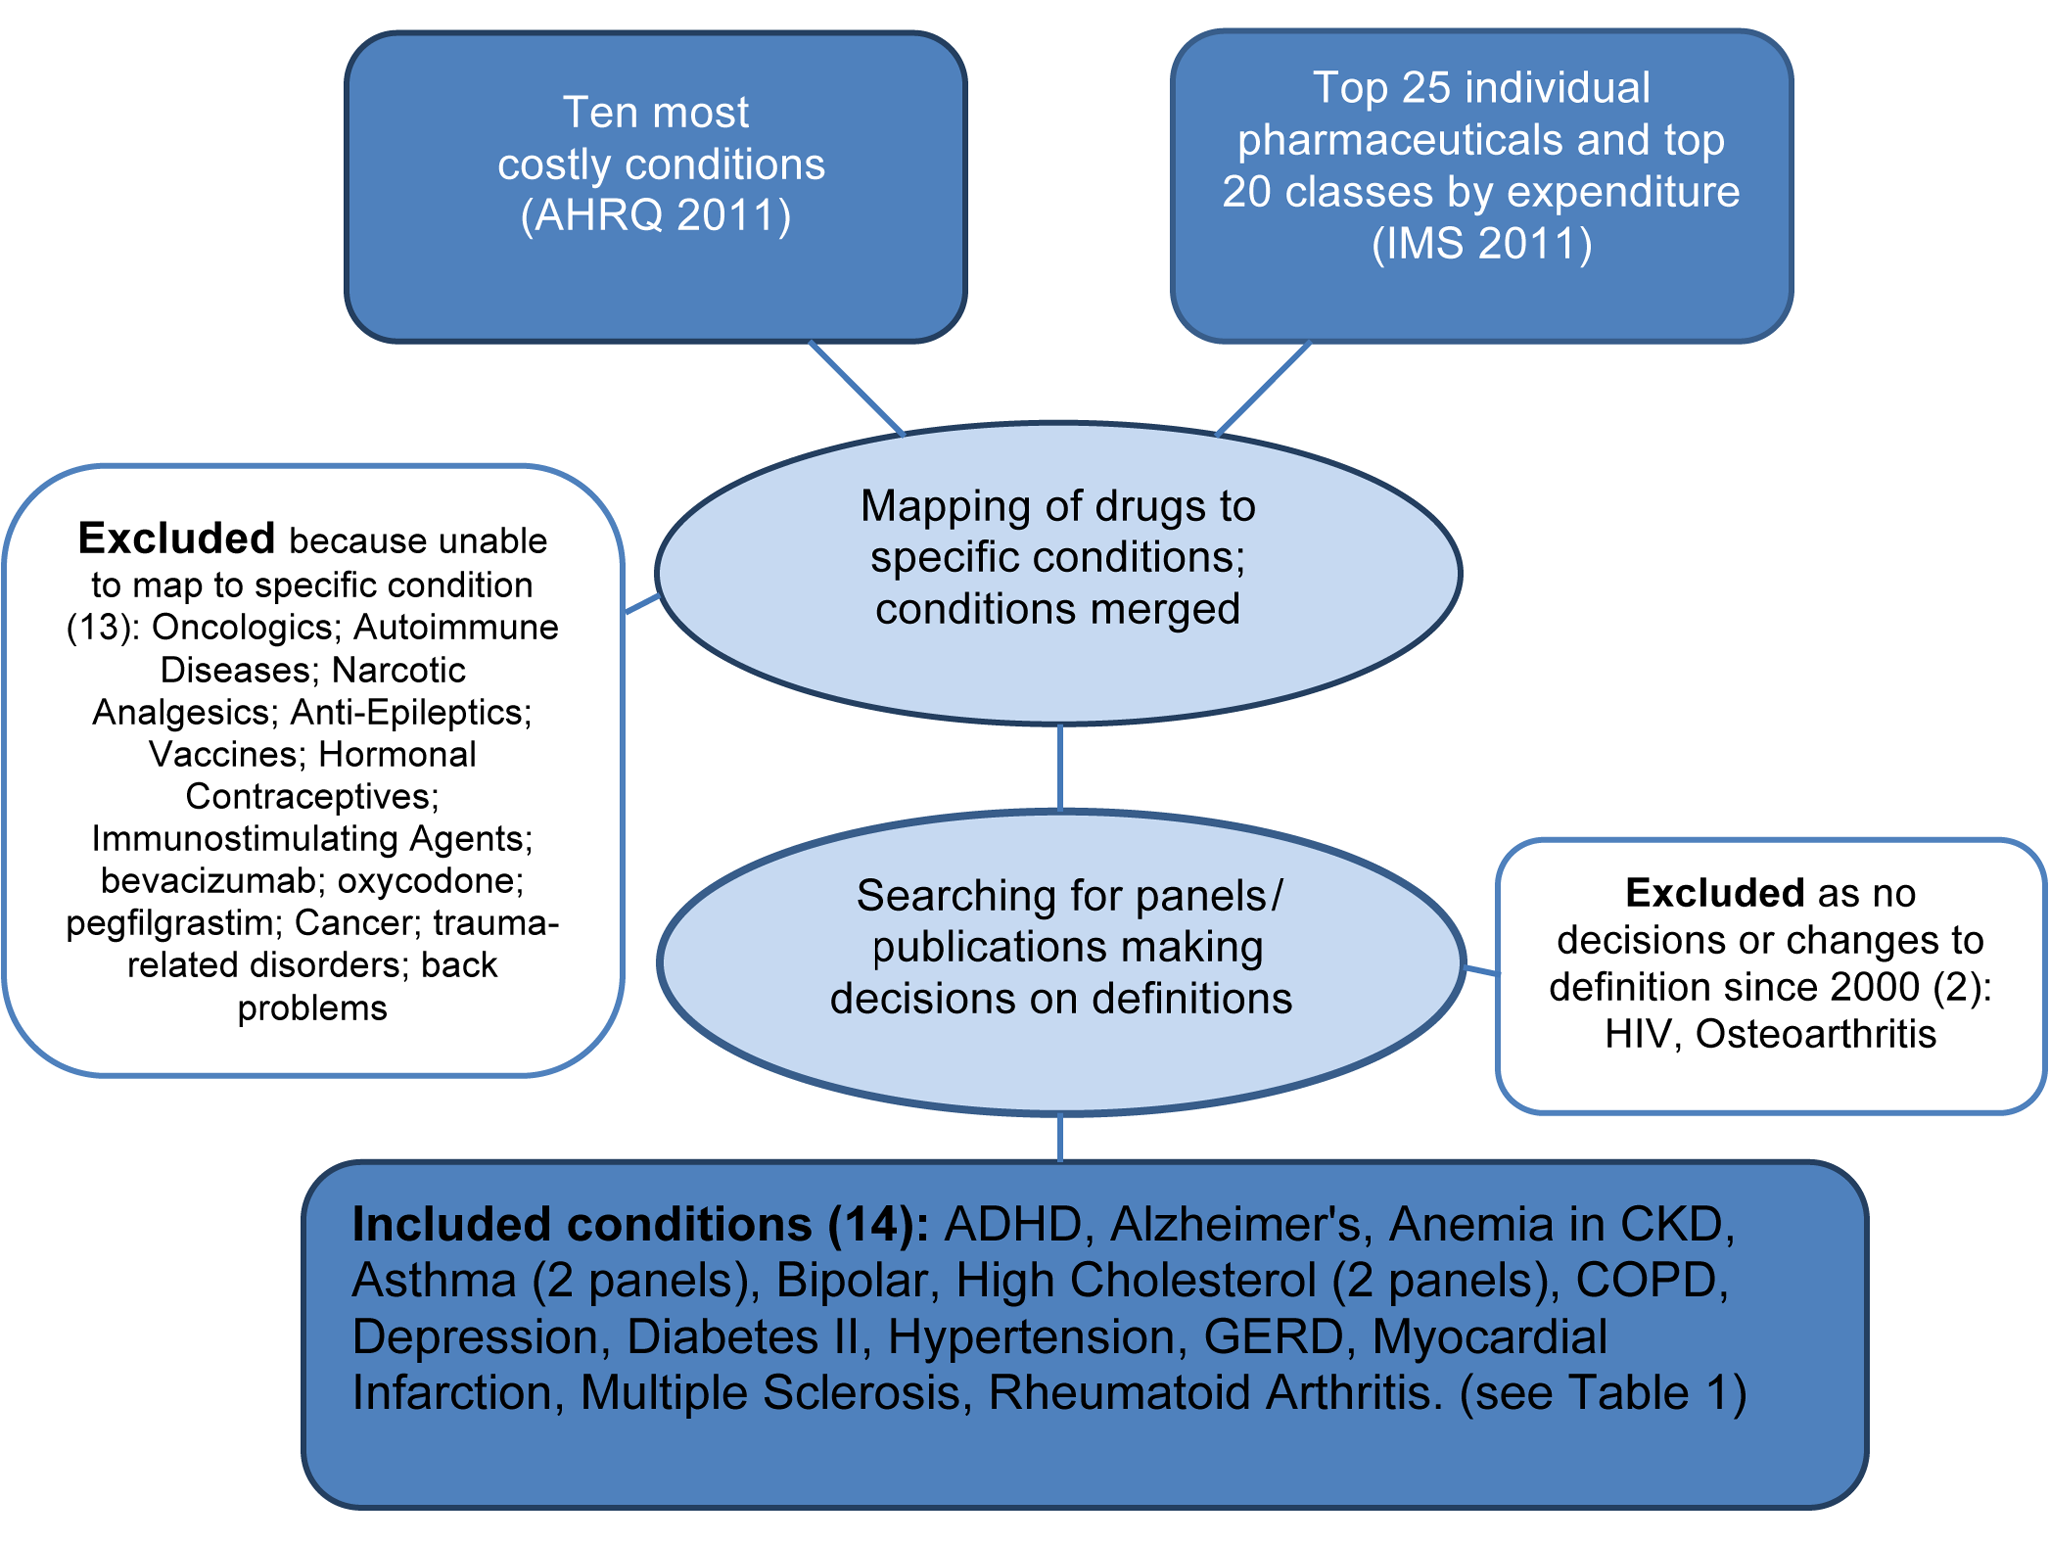 Flowchart identifying study conditions and panels reviewing definitions.